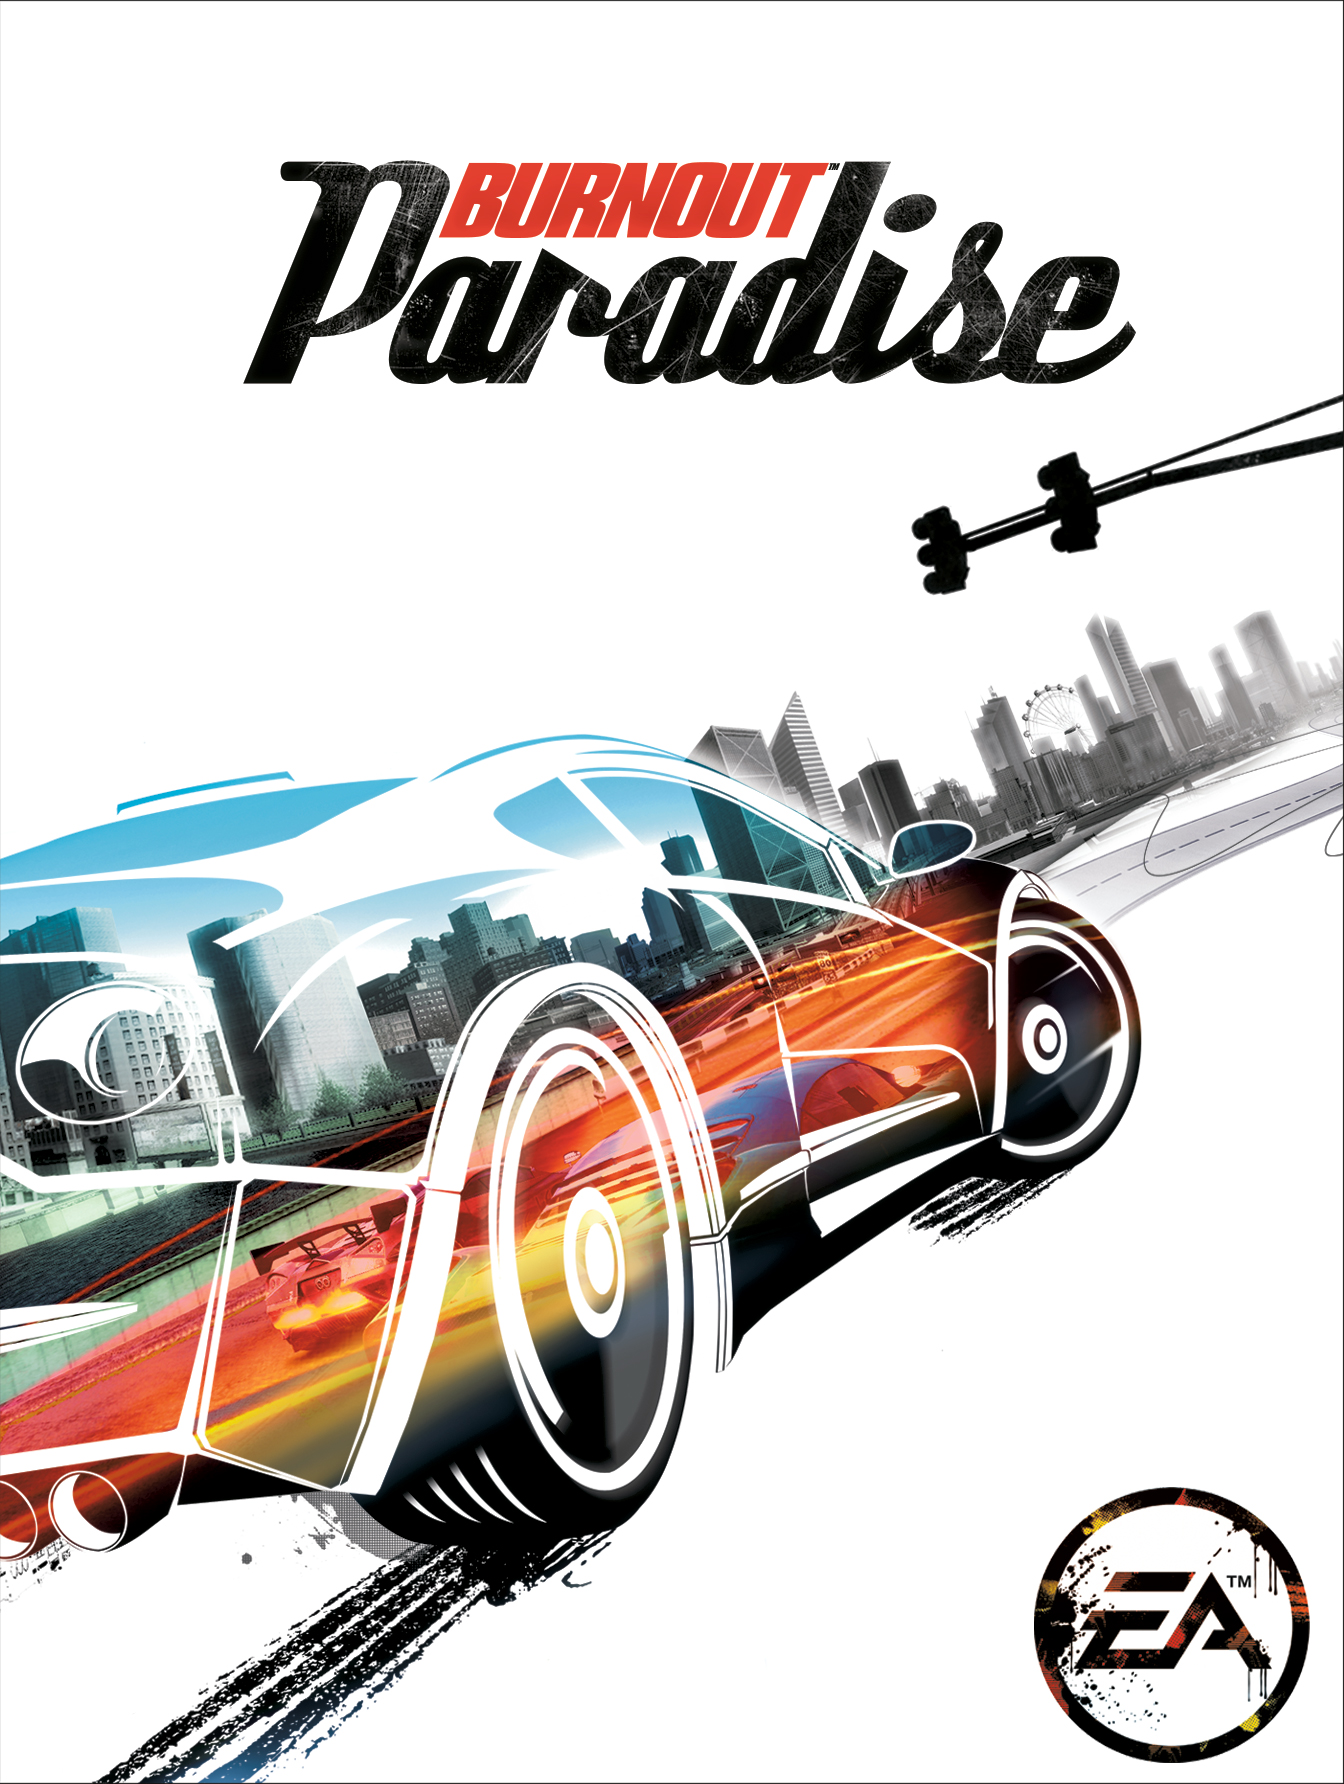 Burnout Paradise | Burnout Wiki | FANDOM powered by Wikia